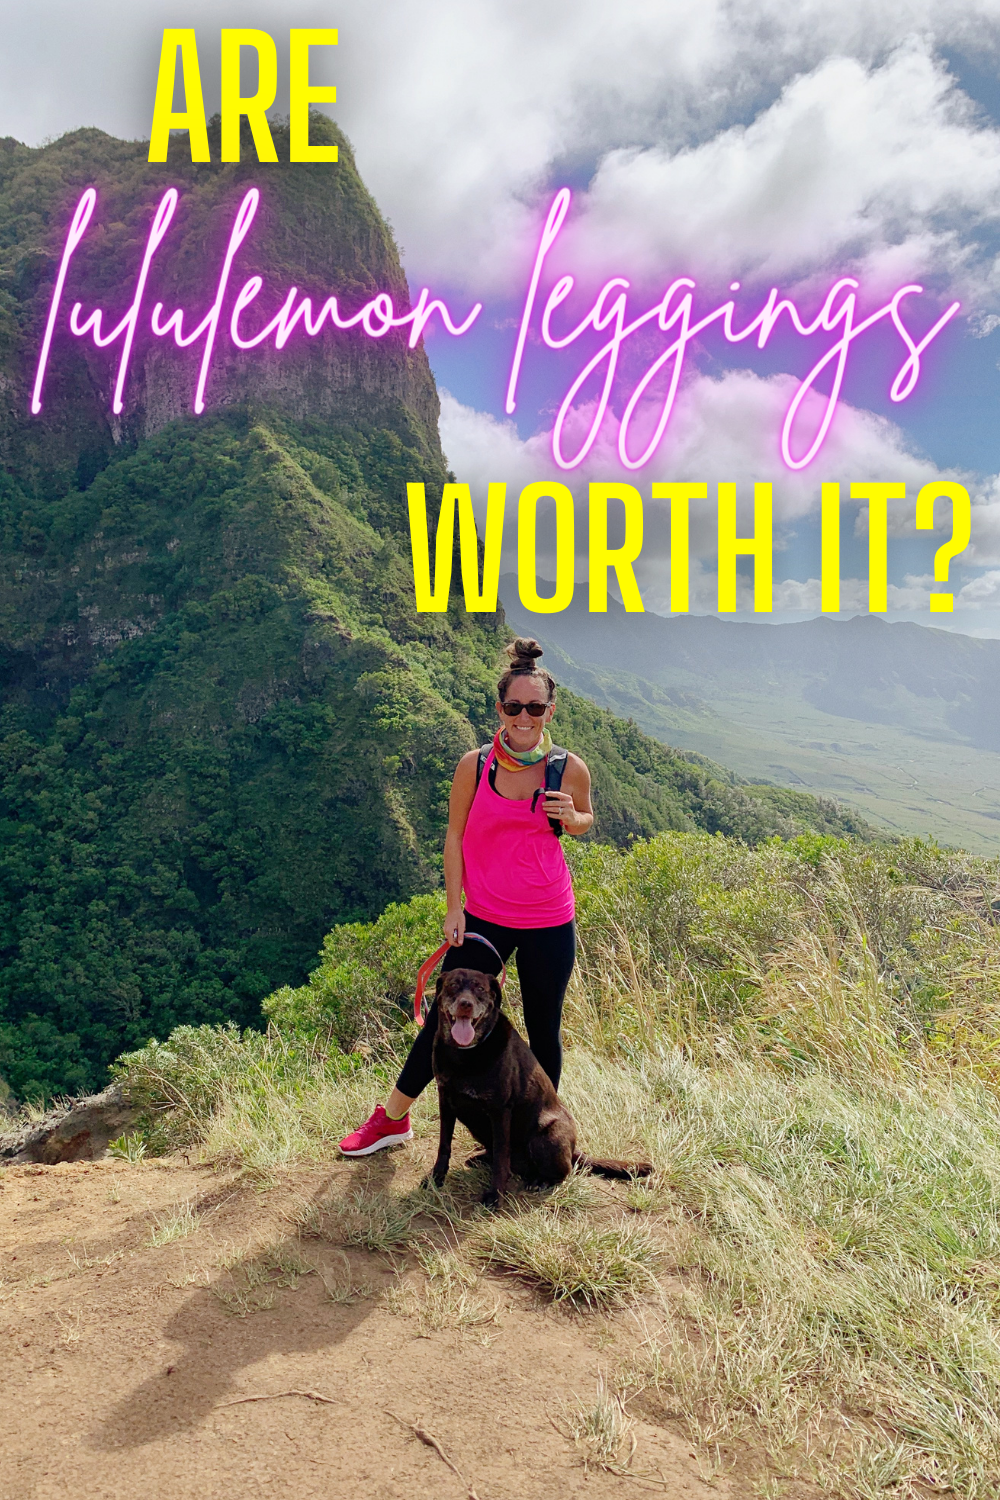 Are Lululemon leggings worth it? - I bought my first pair of Lululemon leggings almost ten years ago and today I'm sharing my full review!   Lululemon Align Leggings  How to wash Lululemon leggings   Do Lululemon leggings run small   Do Lululemon leggings pill   Lululemon leggings cost